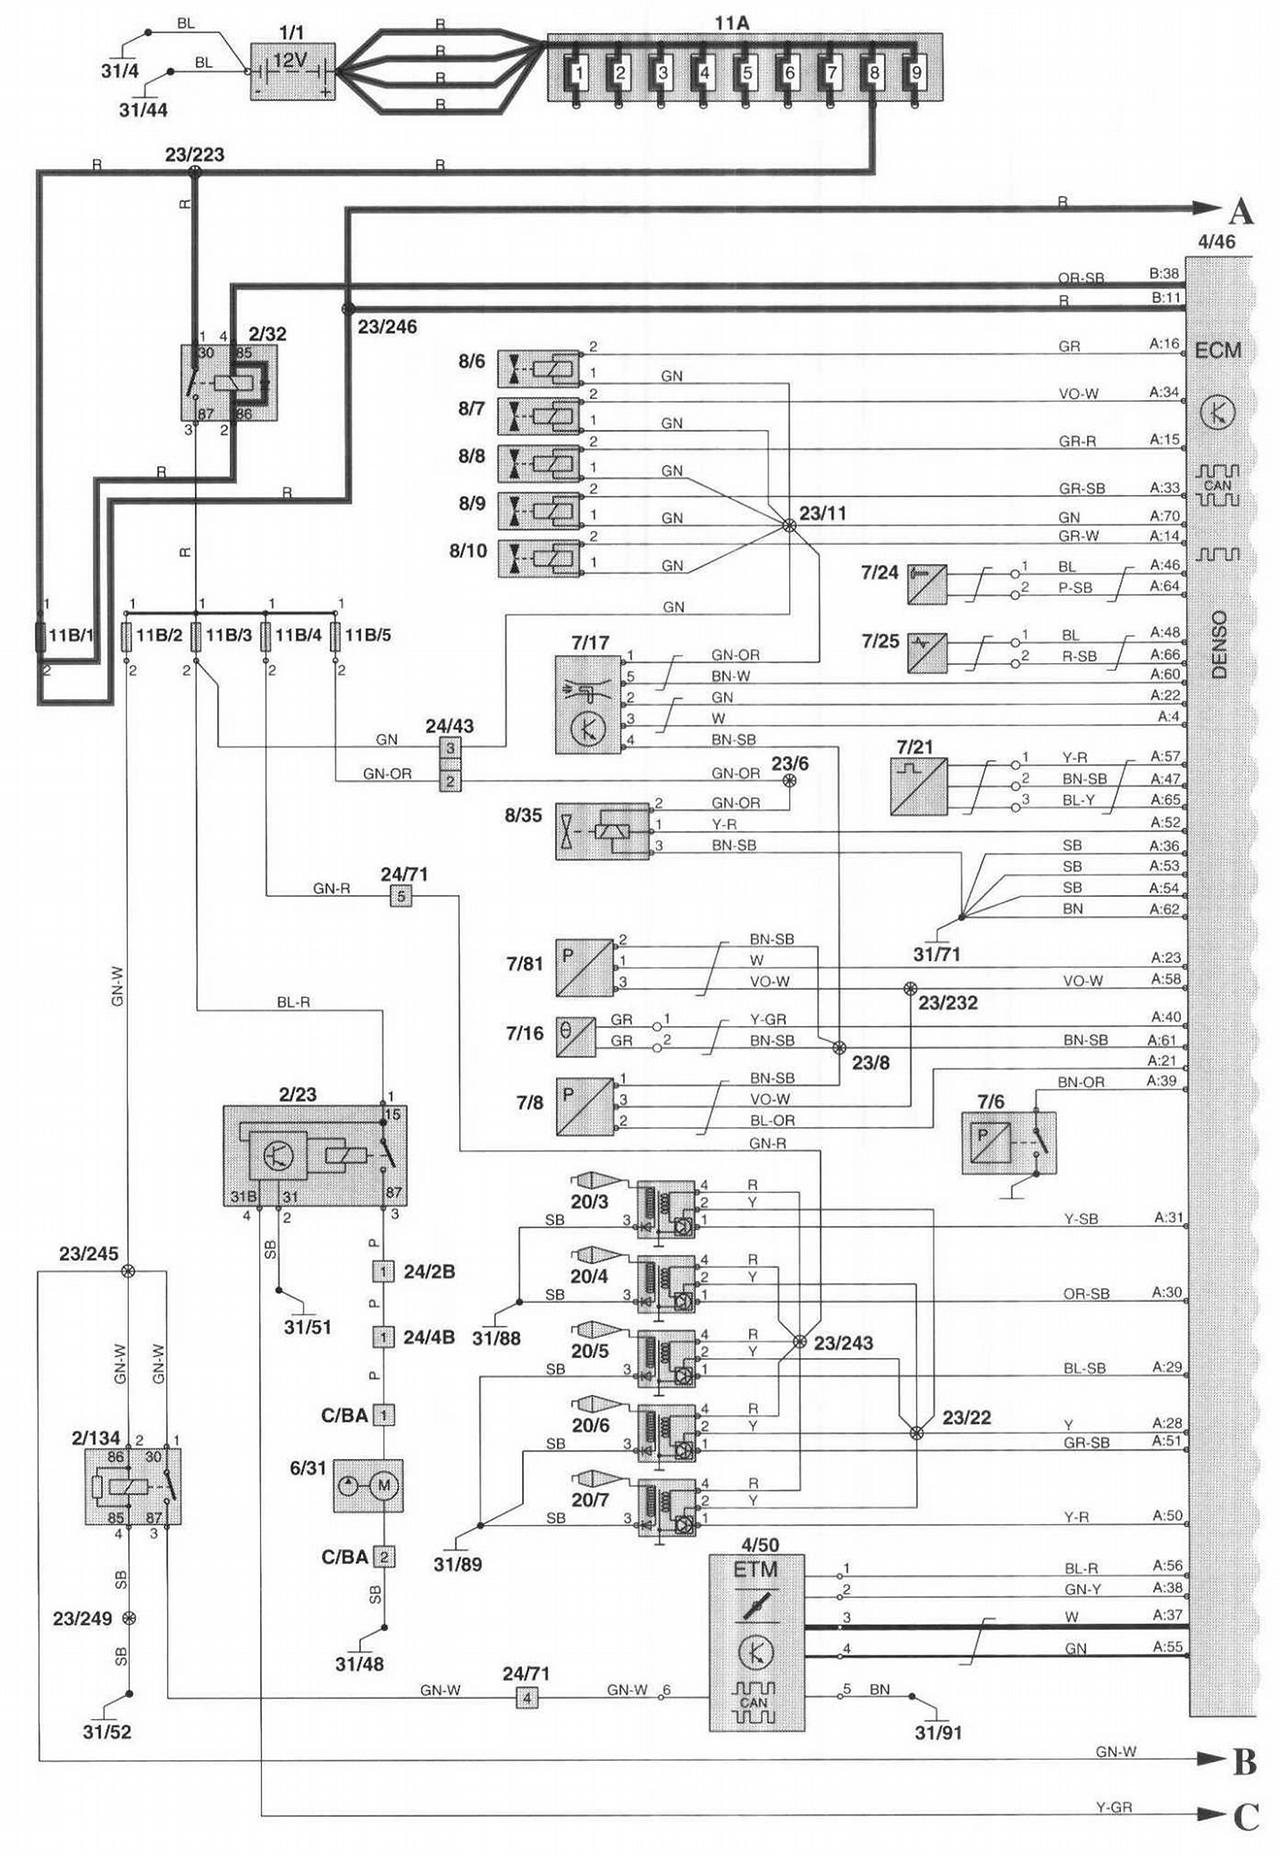 volvo v70 abs wiring diagram wiring diagrams best volvo v70 schematics wiring diagram site 1998 volvo s70 ac wiring diagram volvo v70 abs wiring diagram